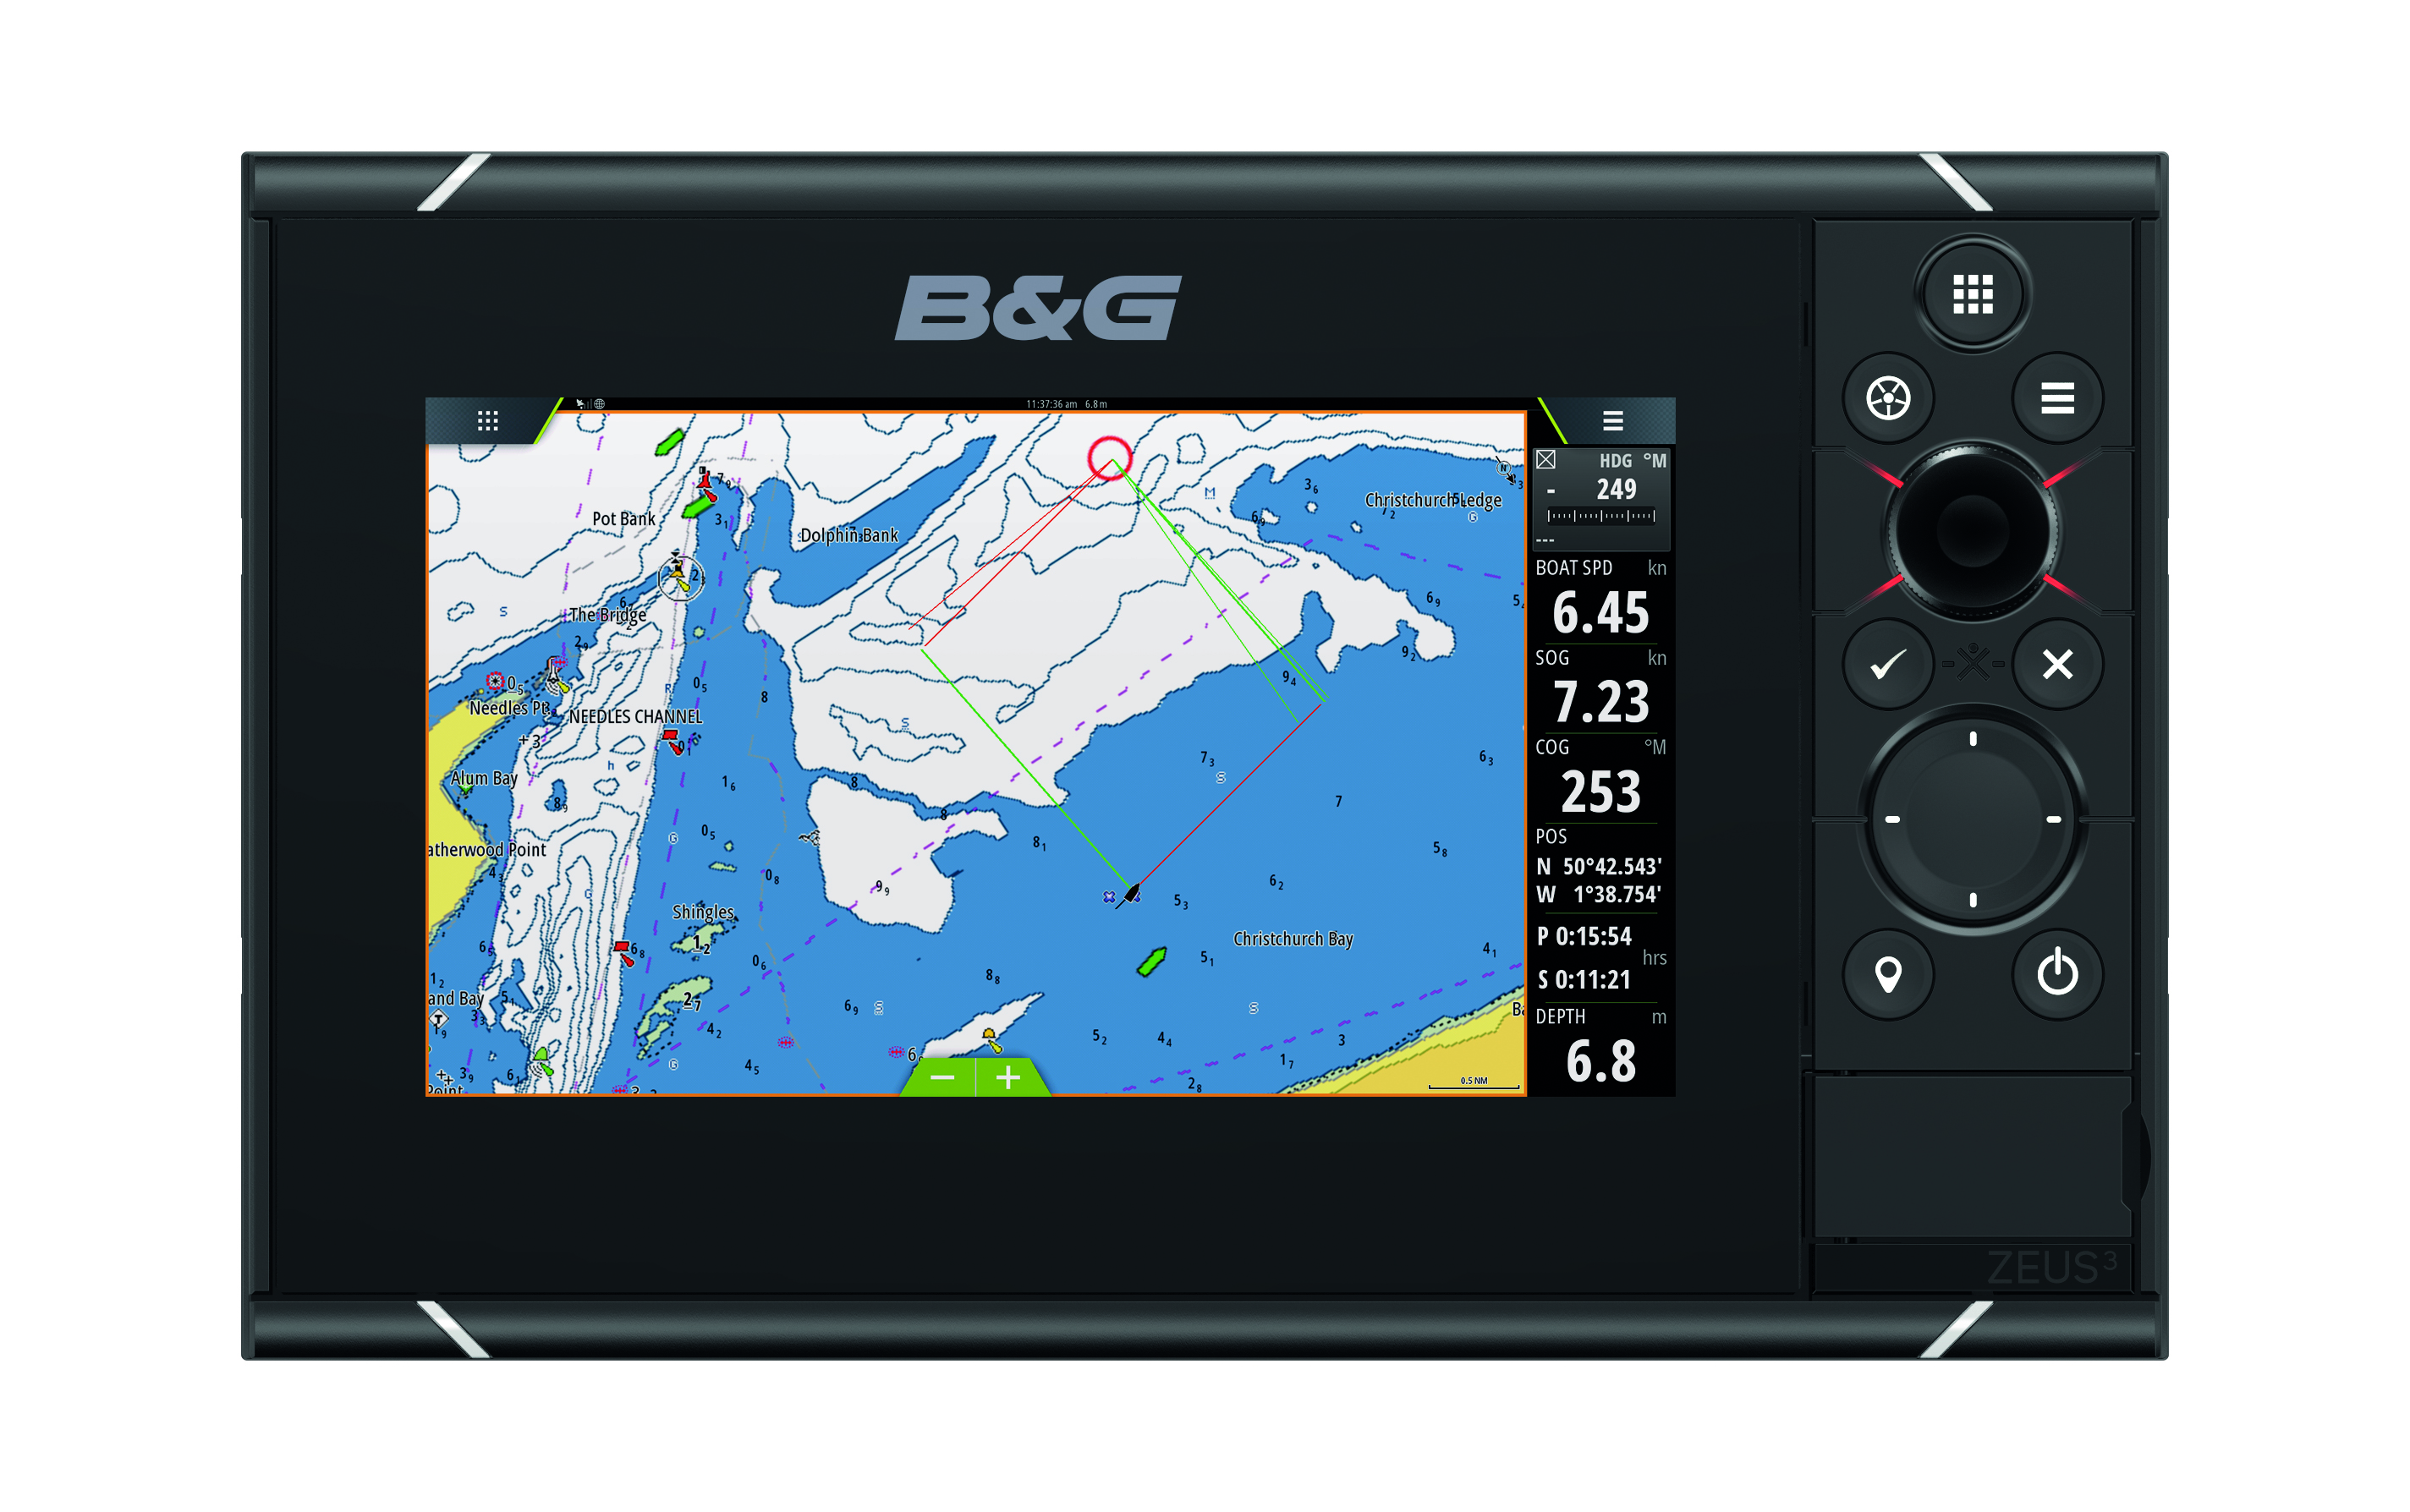 b and g zeus 3 7 multifunction display front view